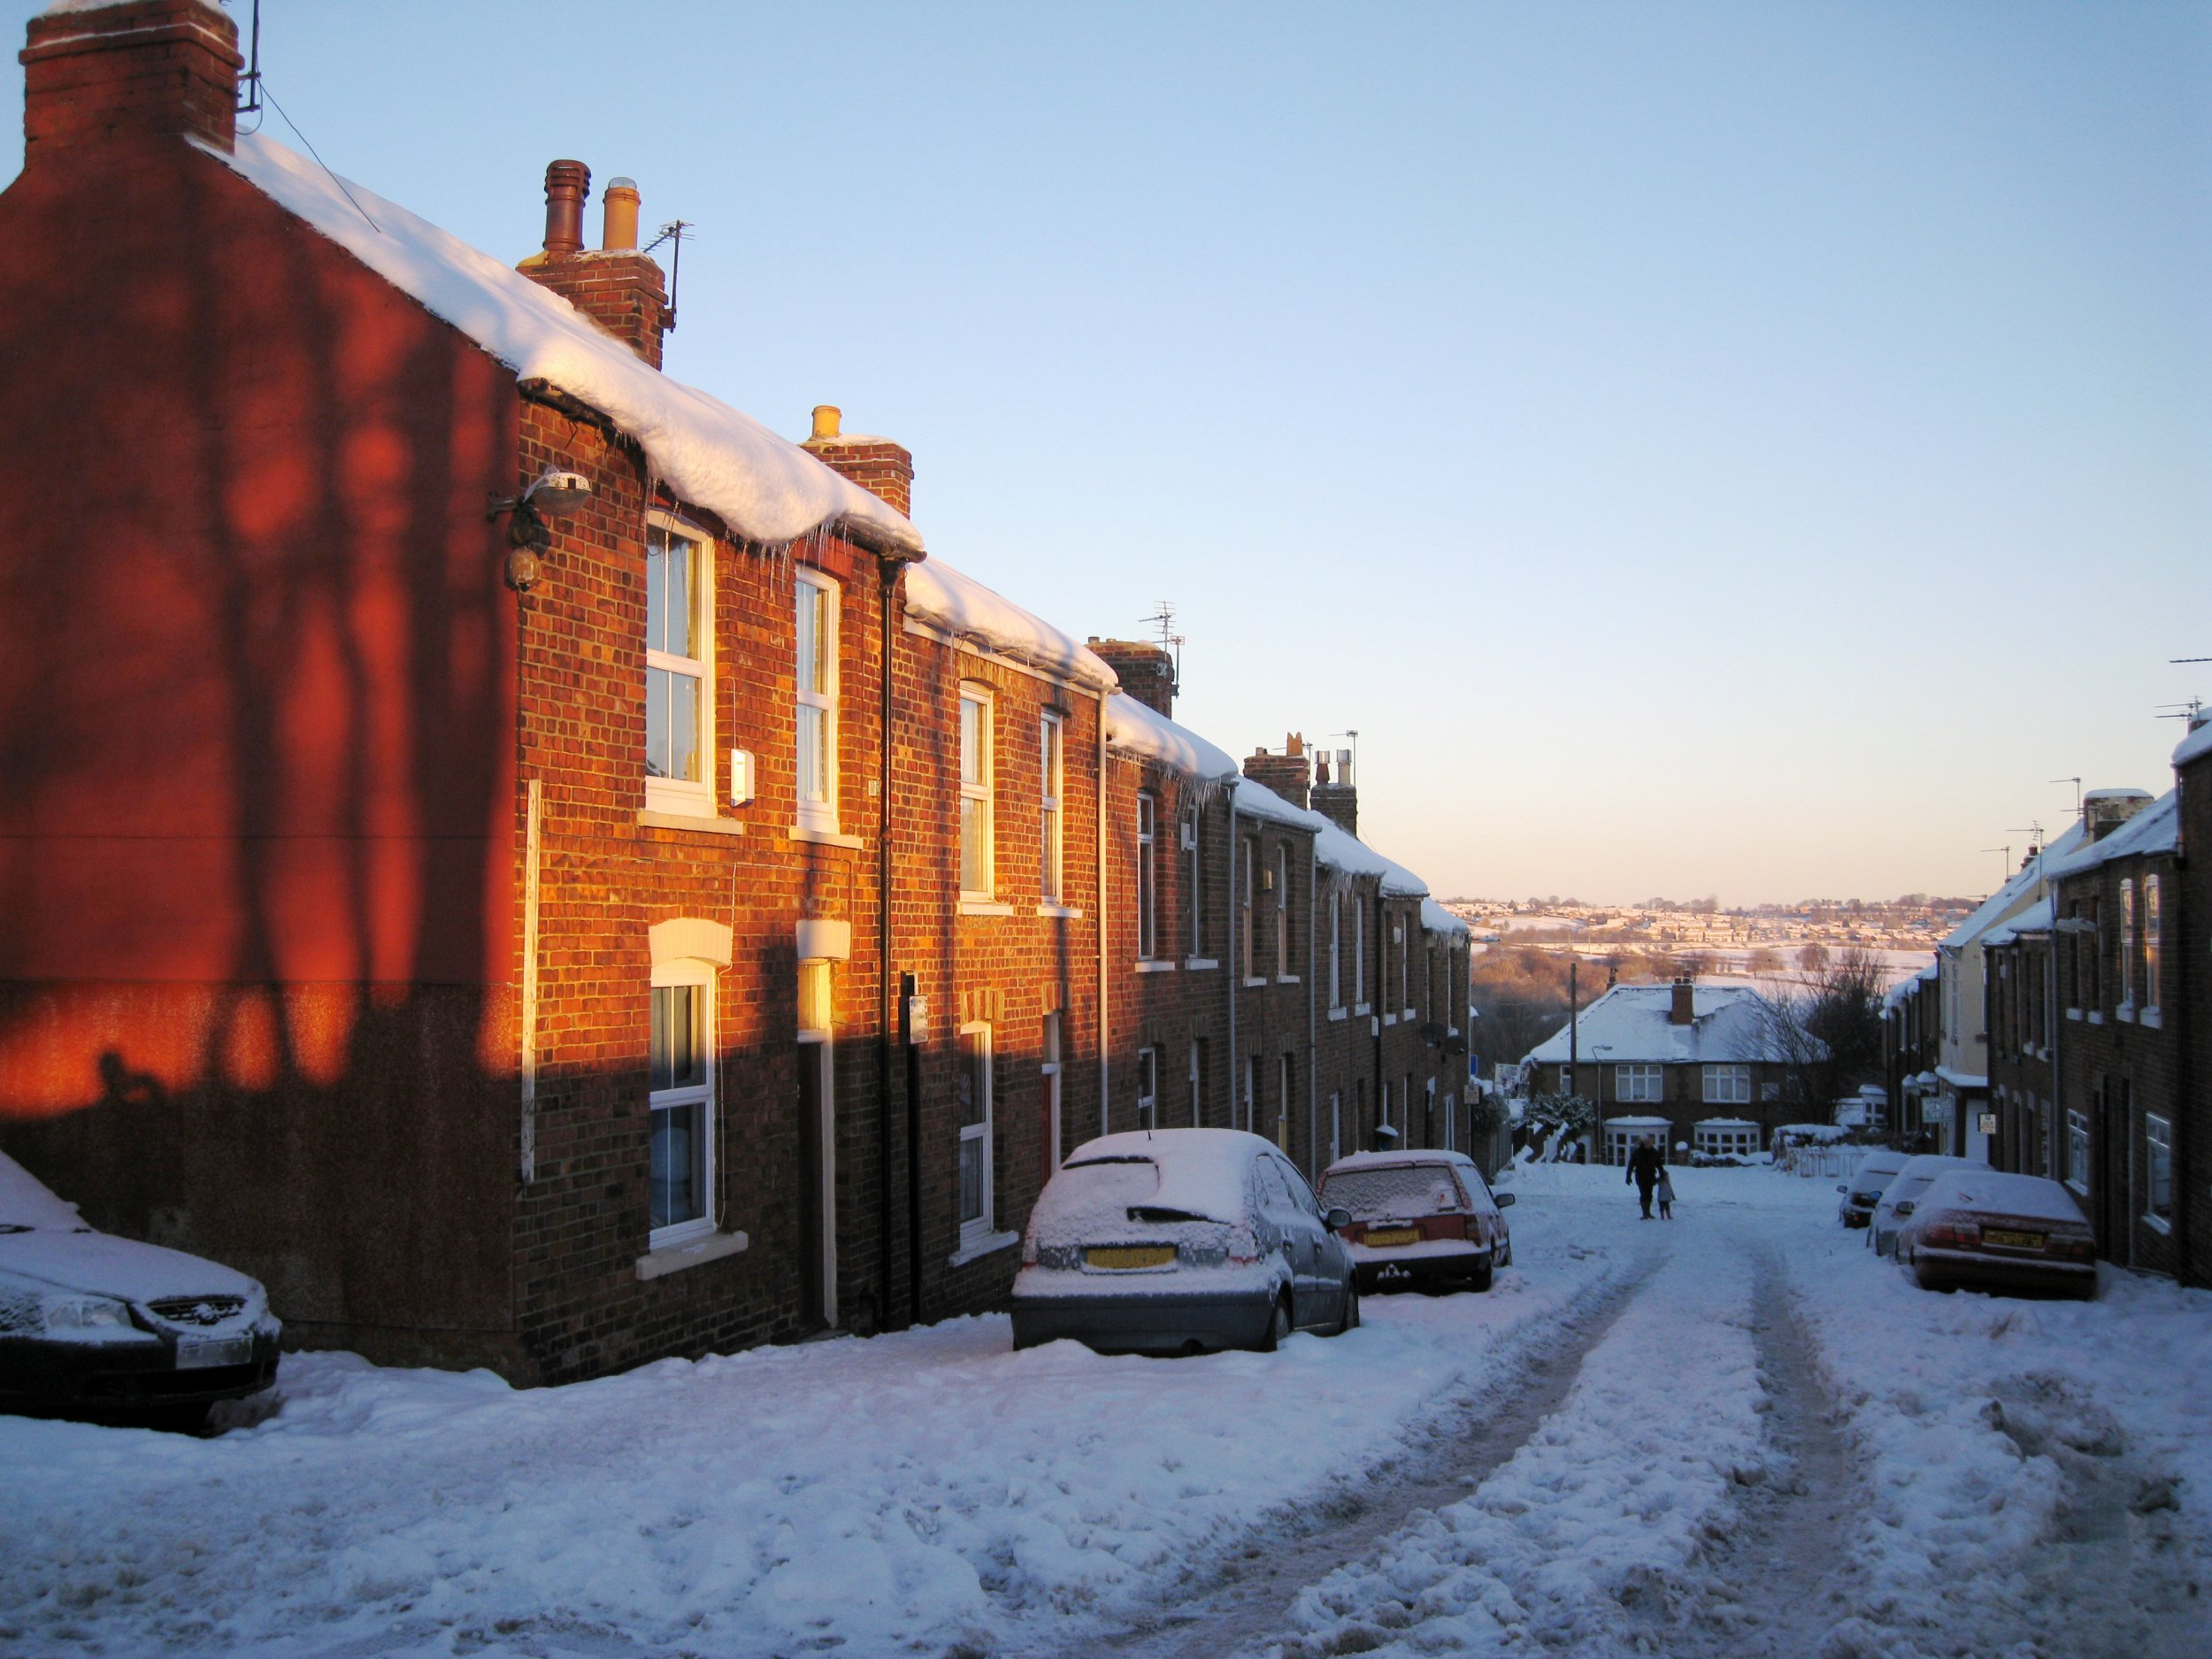 Sun rises over a street of victorian red brick terraced houses with thick snow covering everything and icicles hanging off the houses; Shutterstock ID 674655259; Purchase Order: -